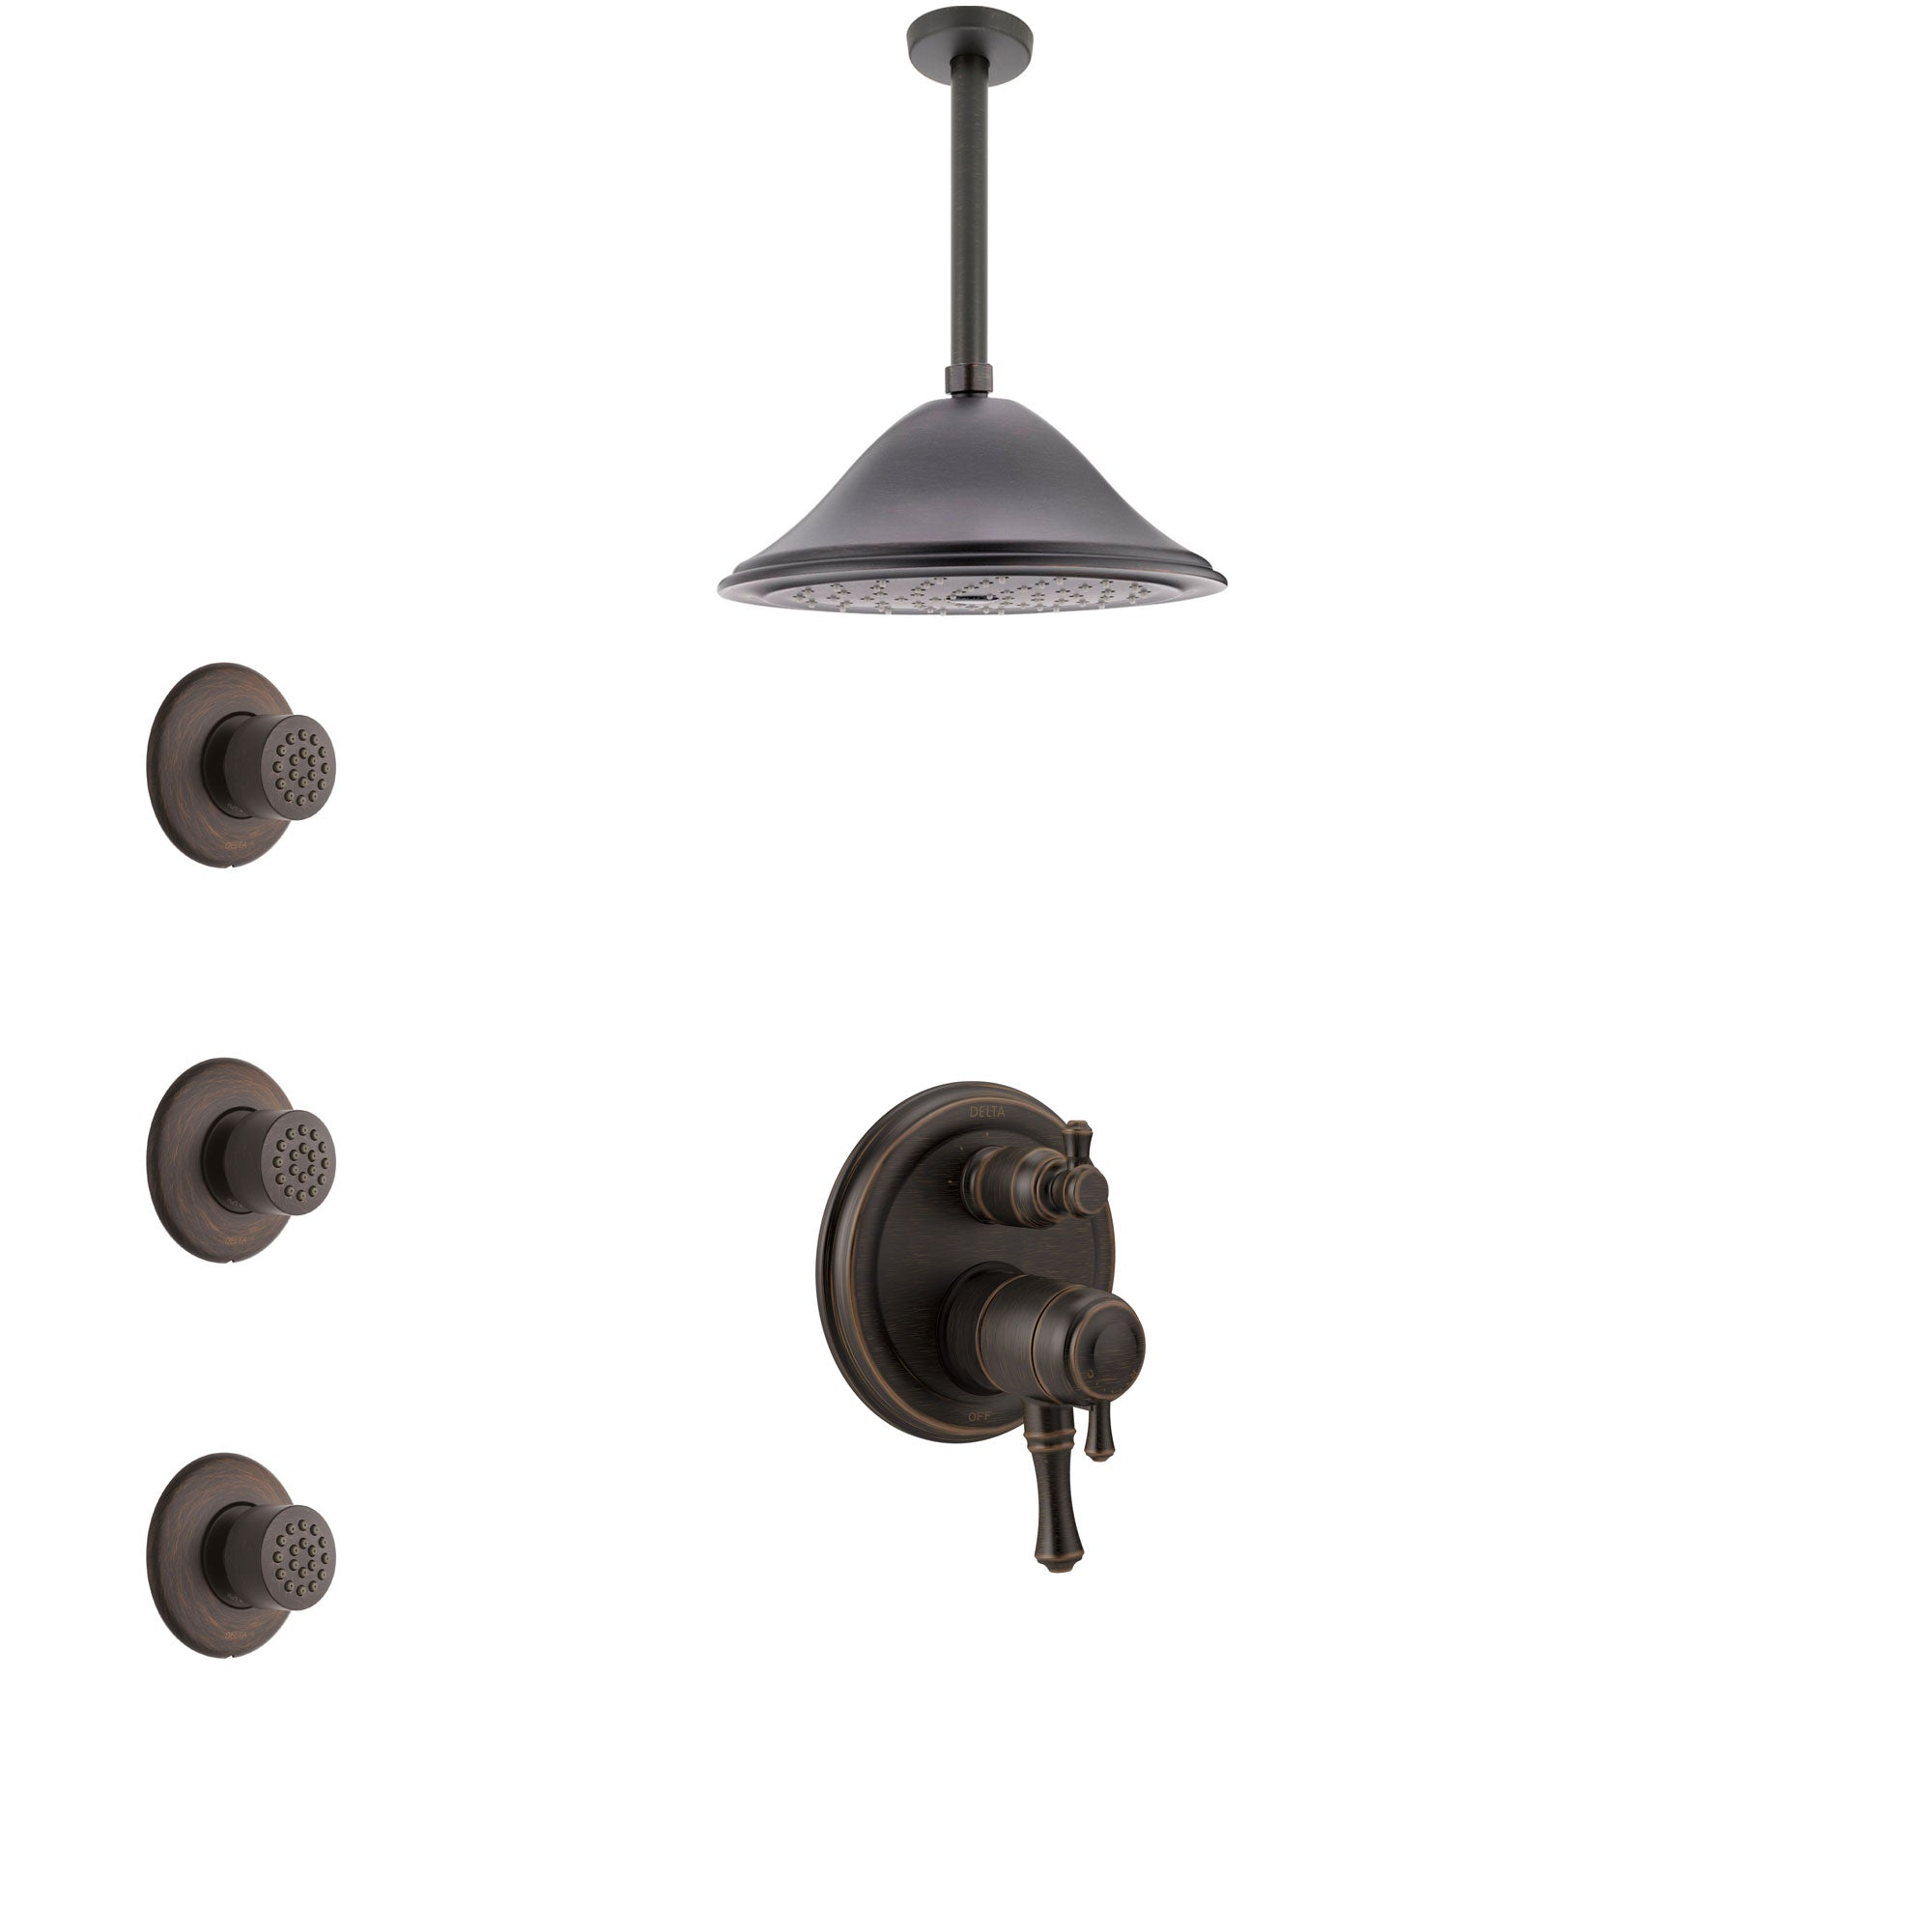 Delta Cassidy Venetian Bronze Shower System with Dual Control Handle, Integrated Diverter, Ceiling Mount Showerhead, and 3 Body Sprays SS27897RB9